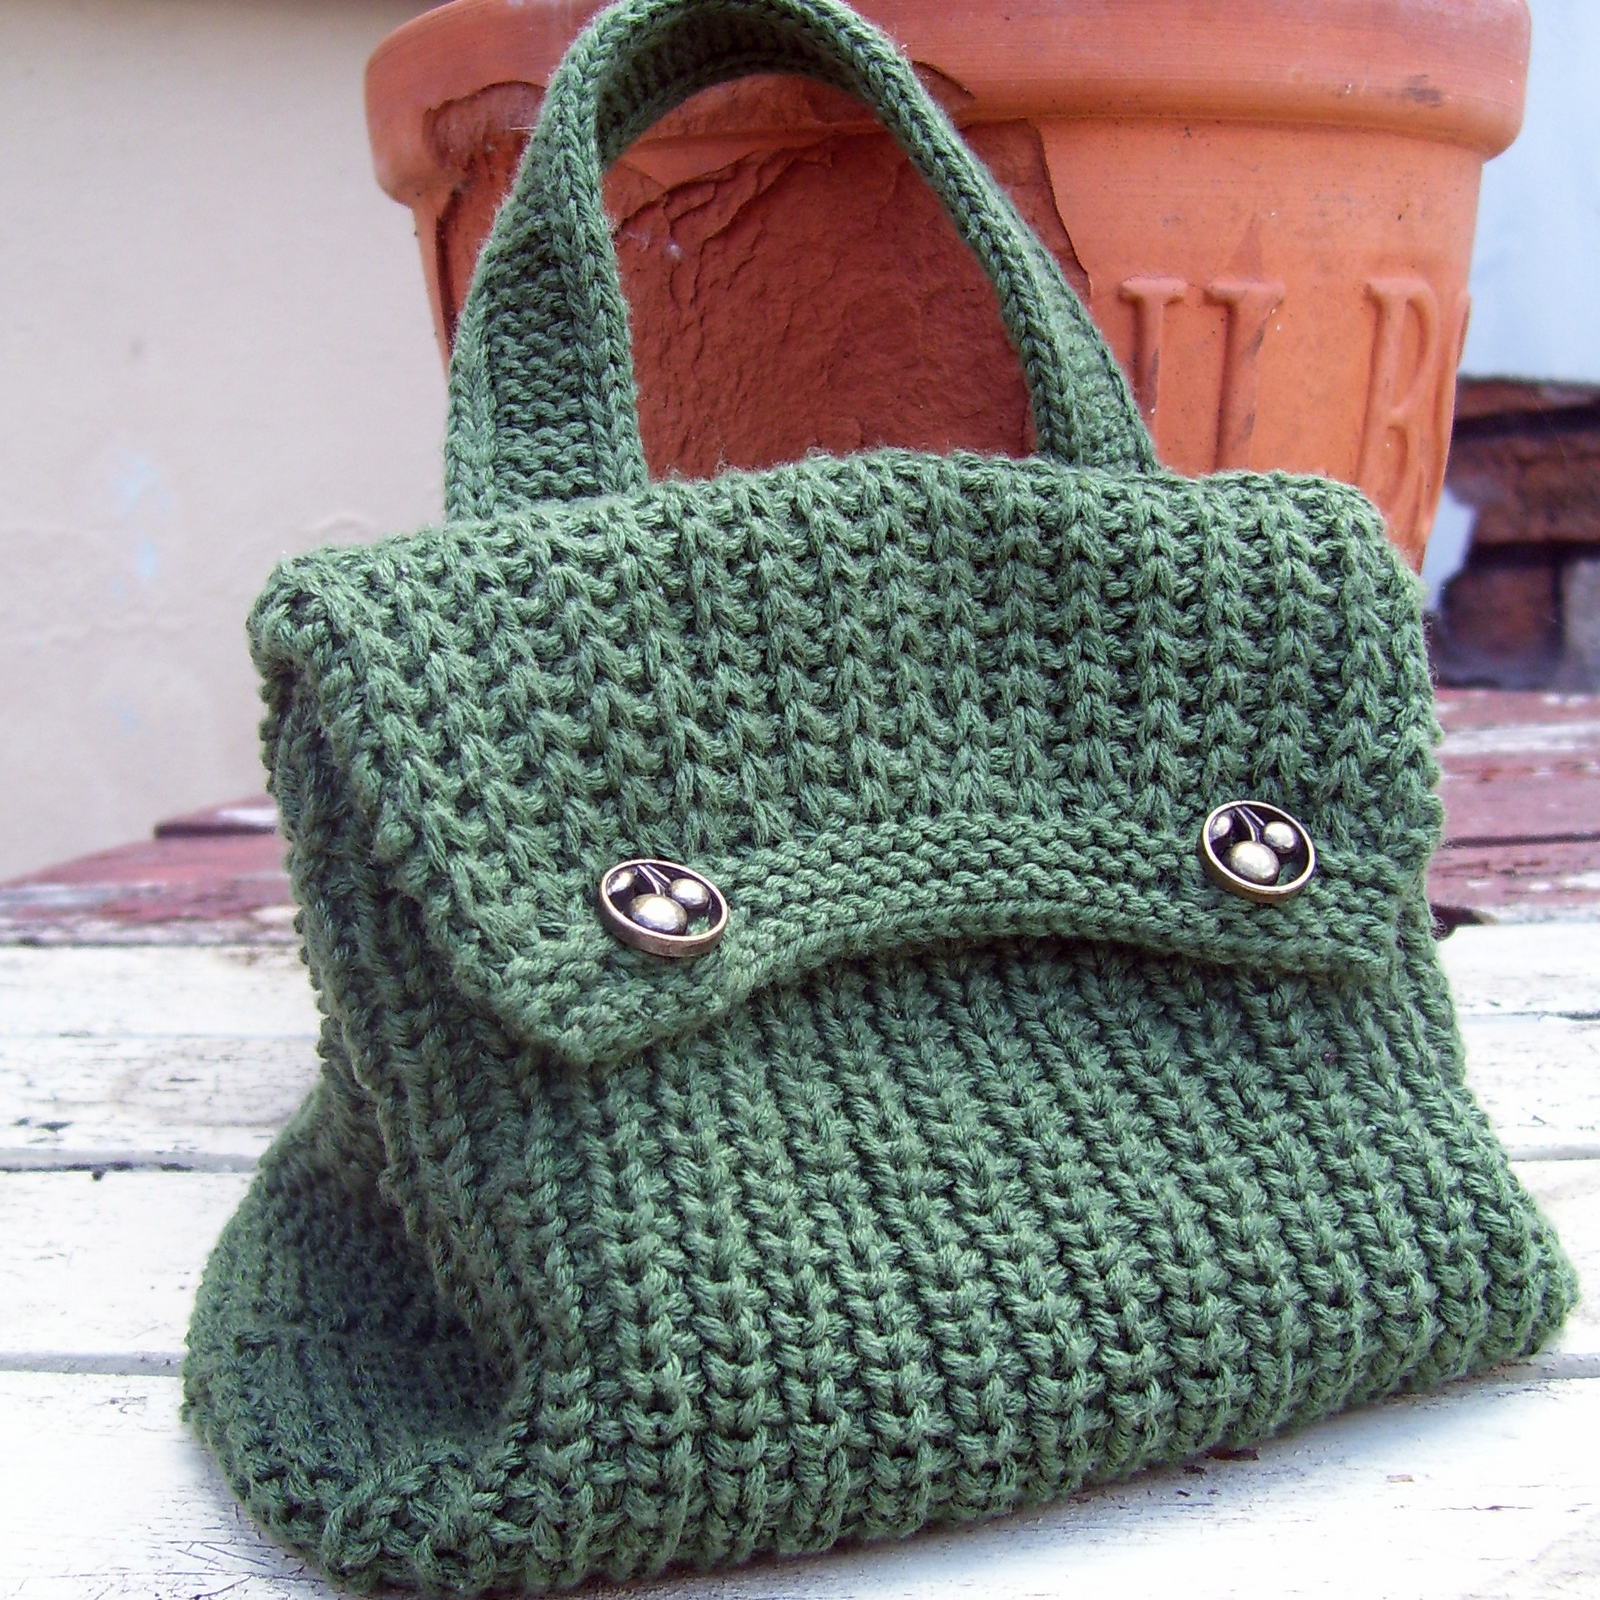 Easy+Crochet+Bag Amazon.com: 100 Purses to Knit Crochet ...